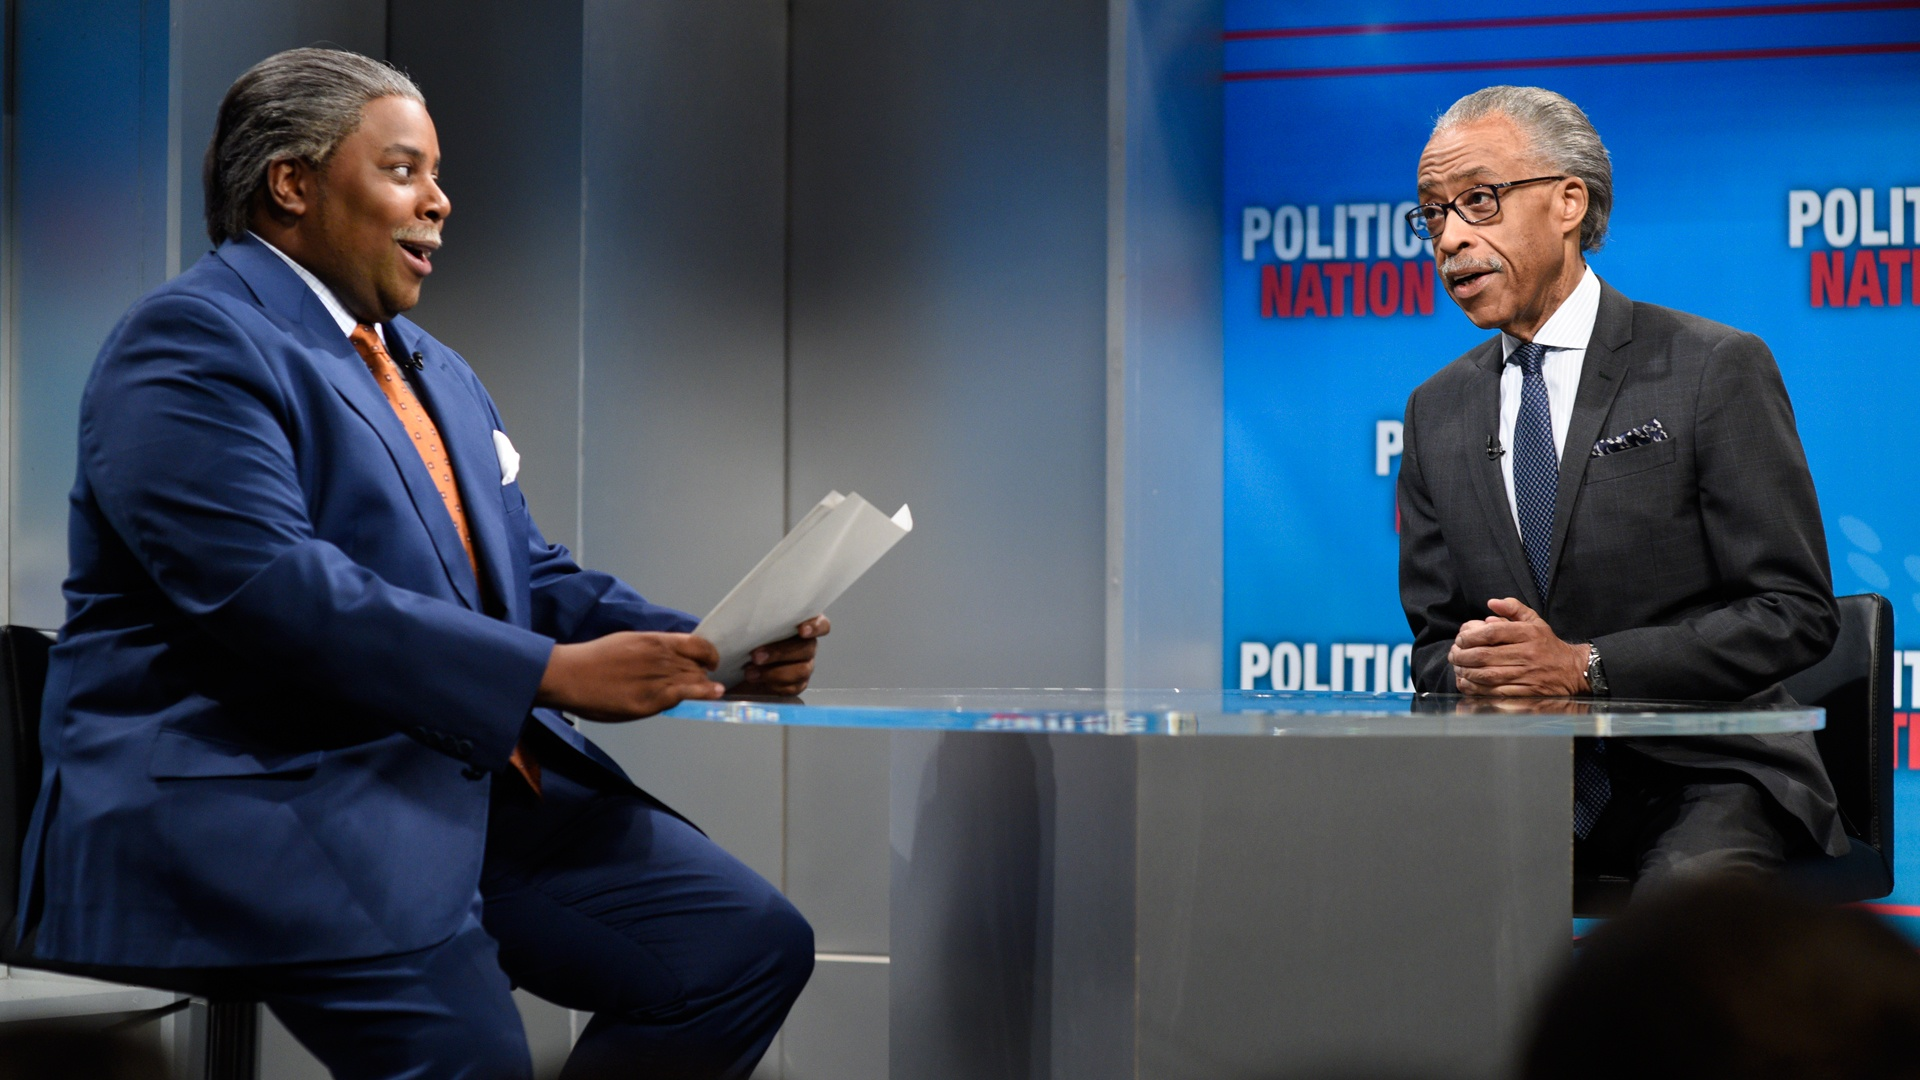 Kenan Thompson and Al Sharpton on Saturday Night Live